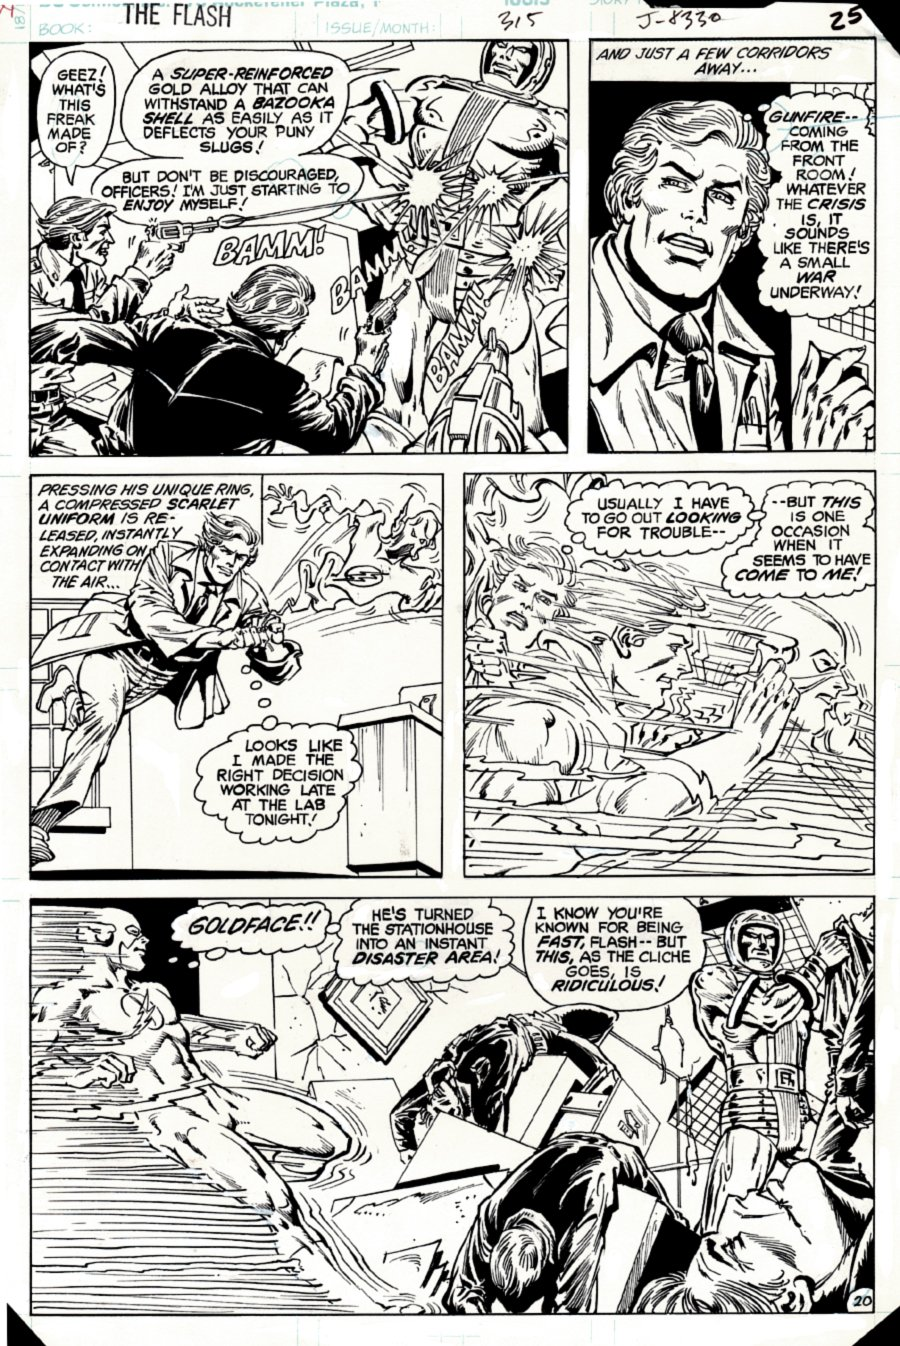 The Flash #315 p 20 (SOLD LIVE ON 'DUELING DEALERS OF COMIC ART' EPISODE #31 PODCAST ON 8-14-2021(RE-WATCH THIS FUNNY ART SELLING SHOW HERE)